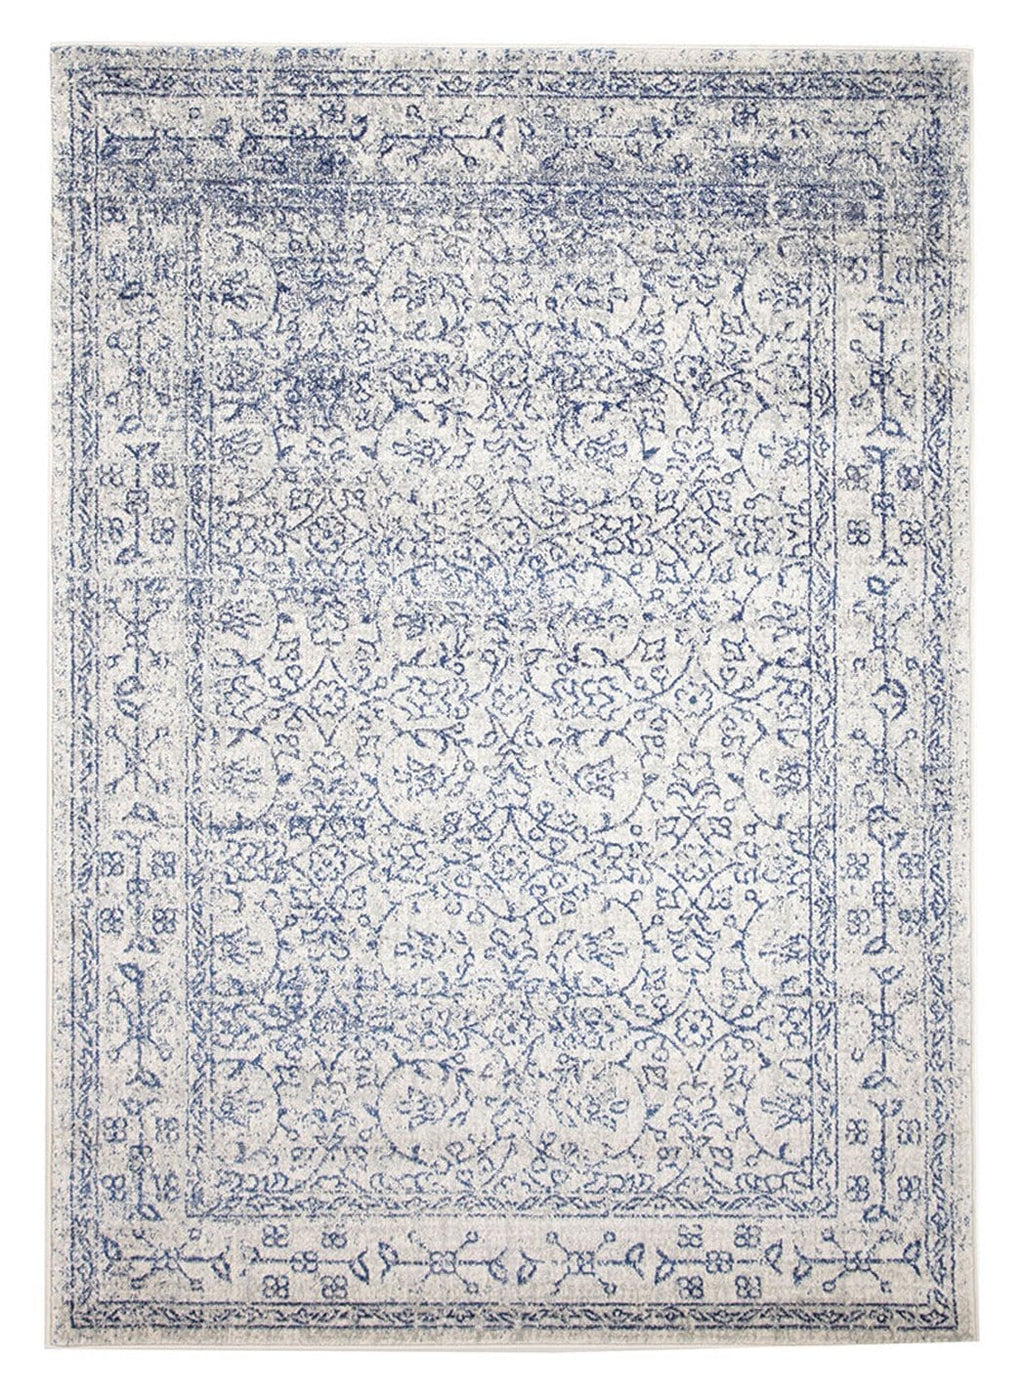 Avila Cobalt Blue Floral Transitional Rug